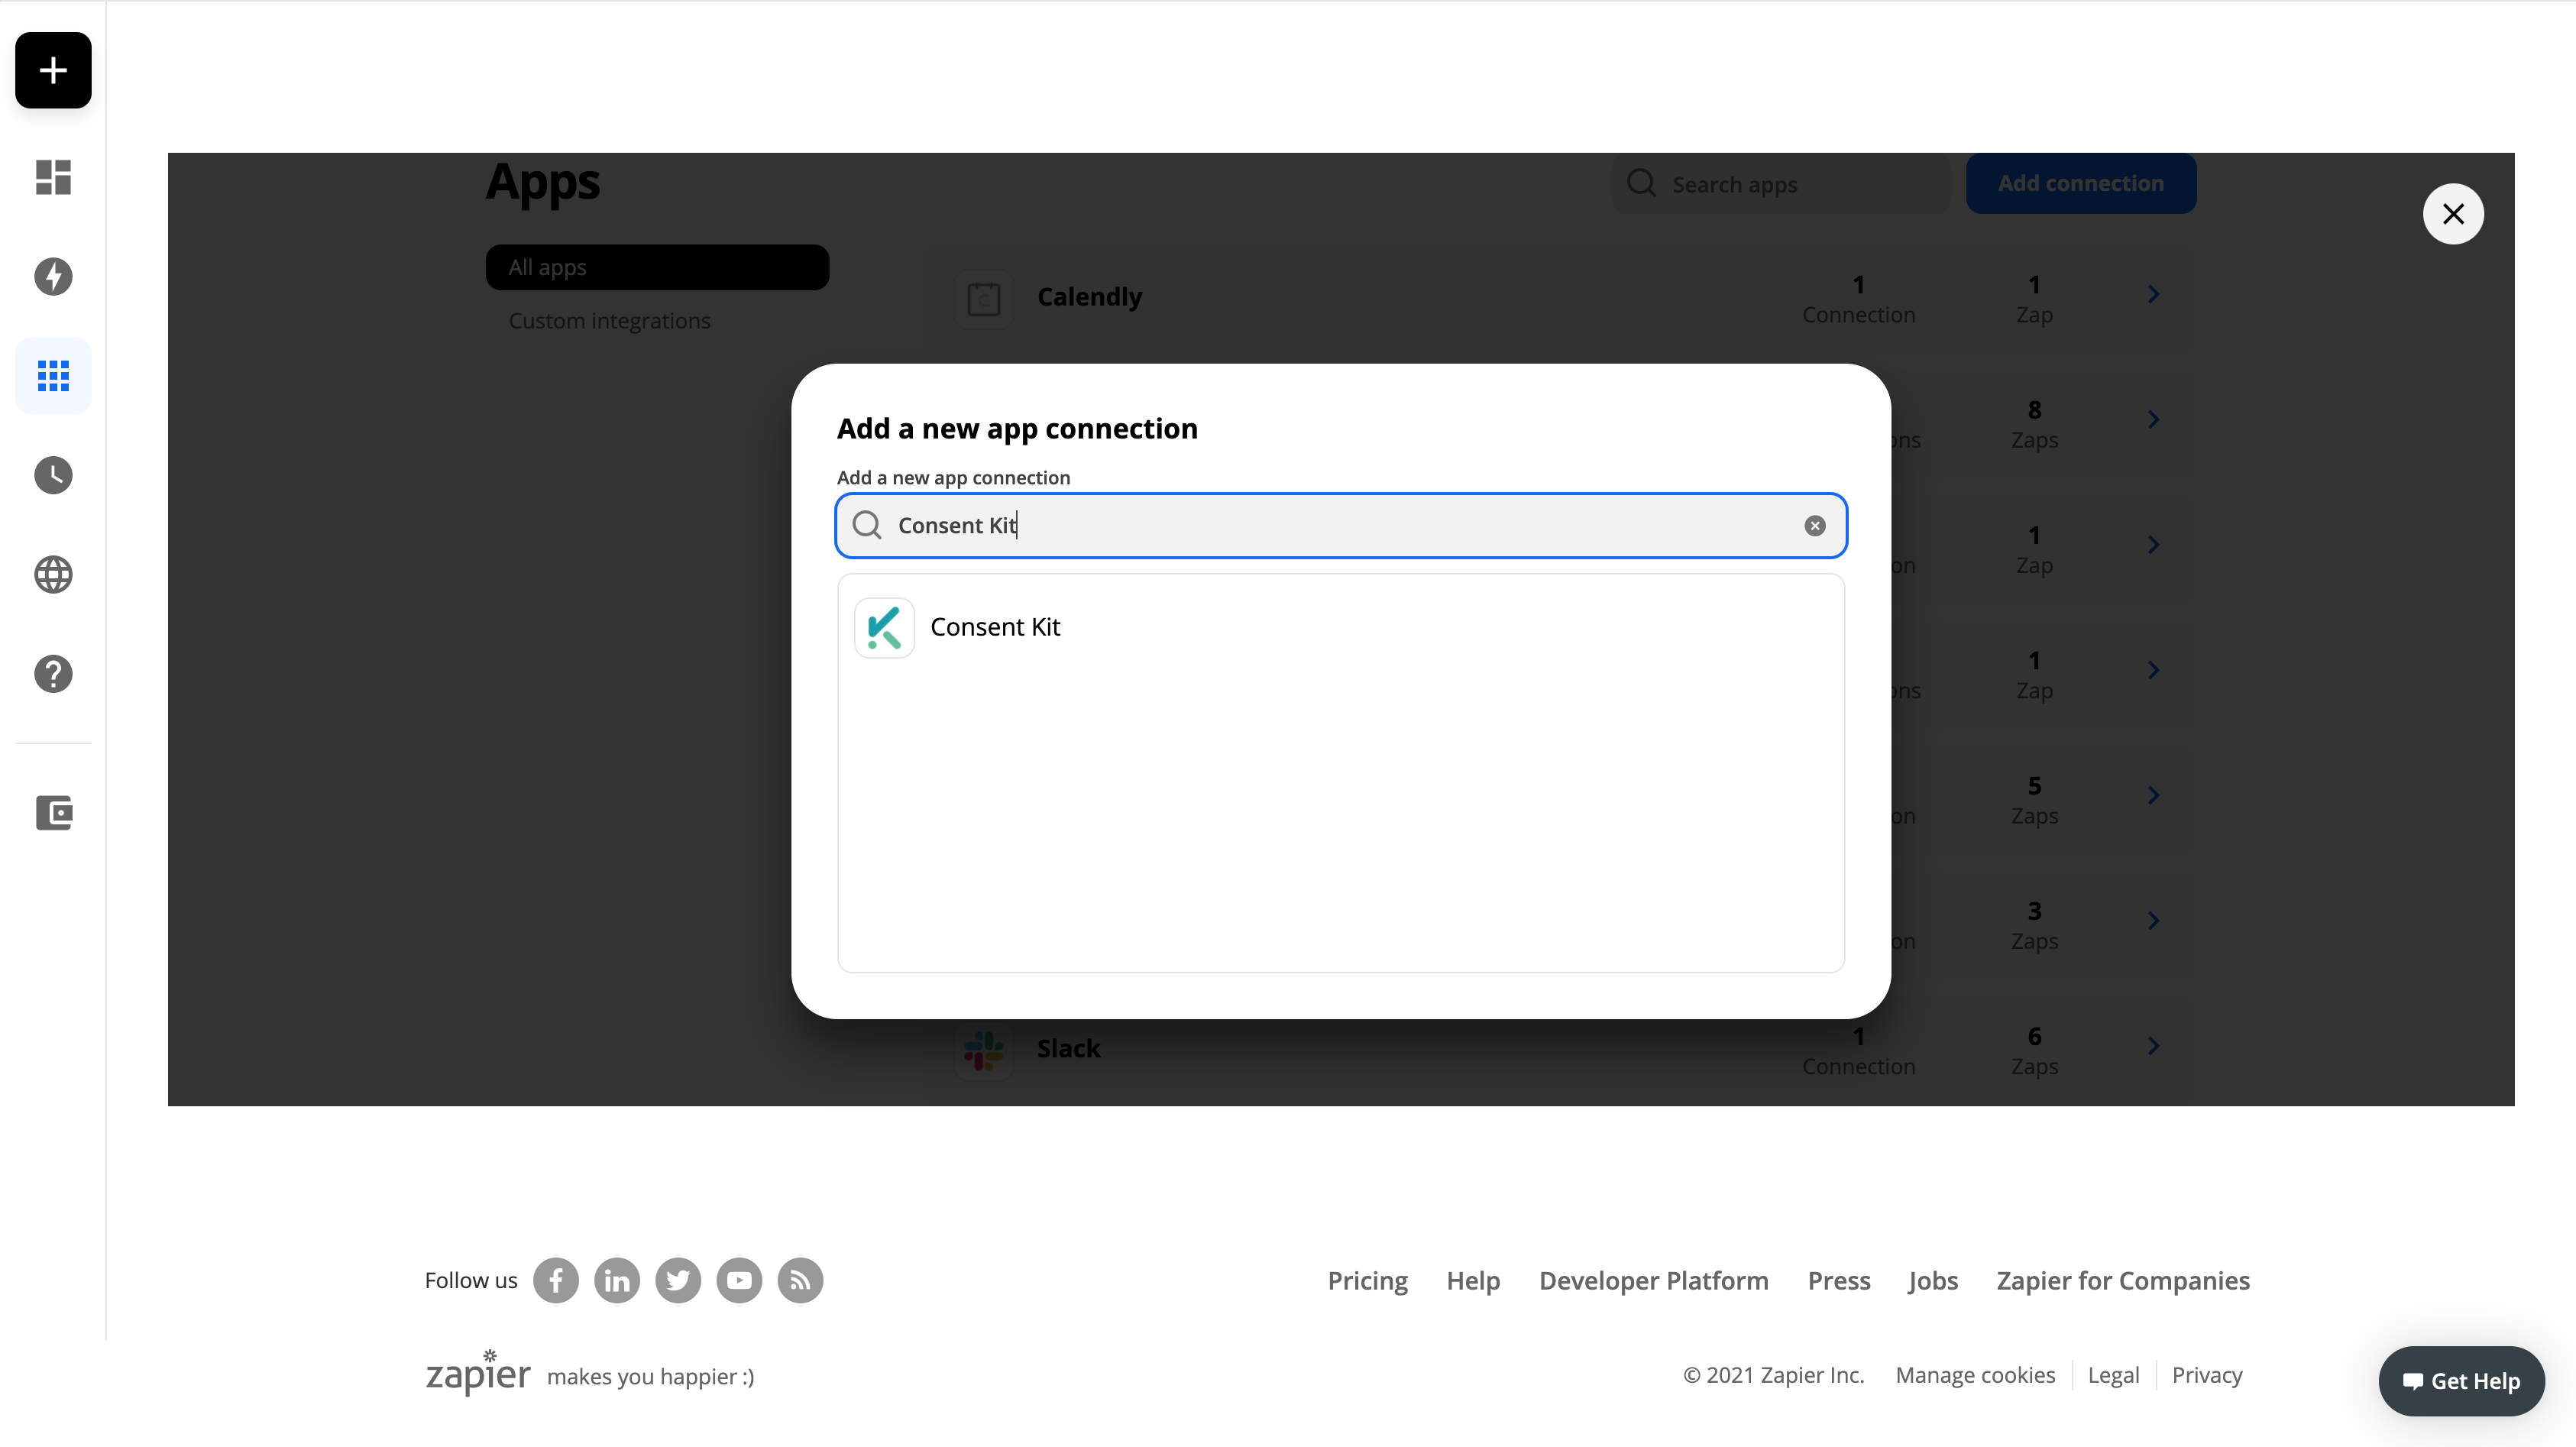 Screenshot of the add connection dialog in a Zapier account